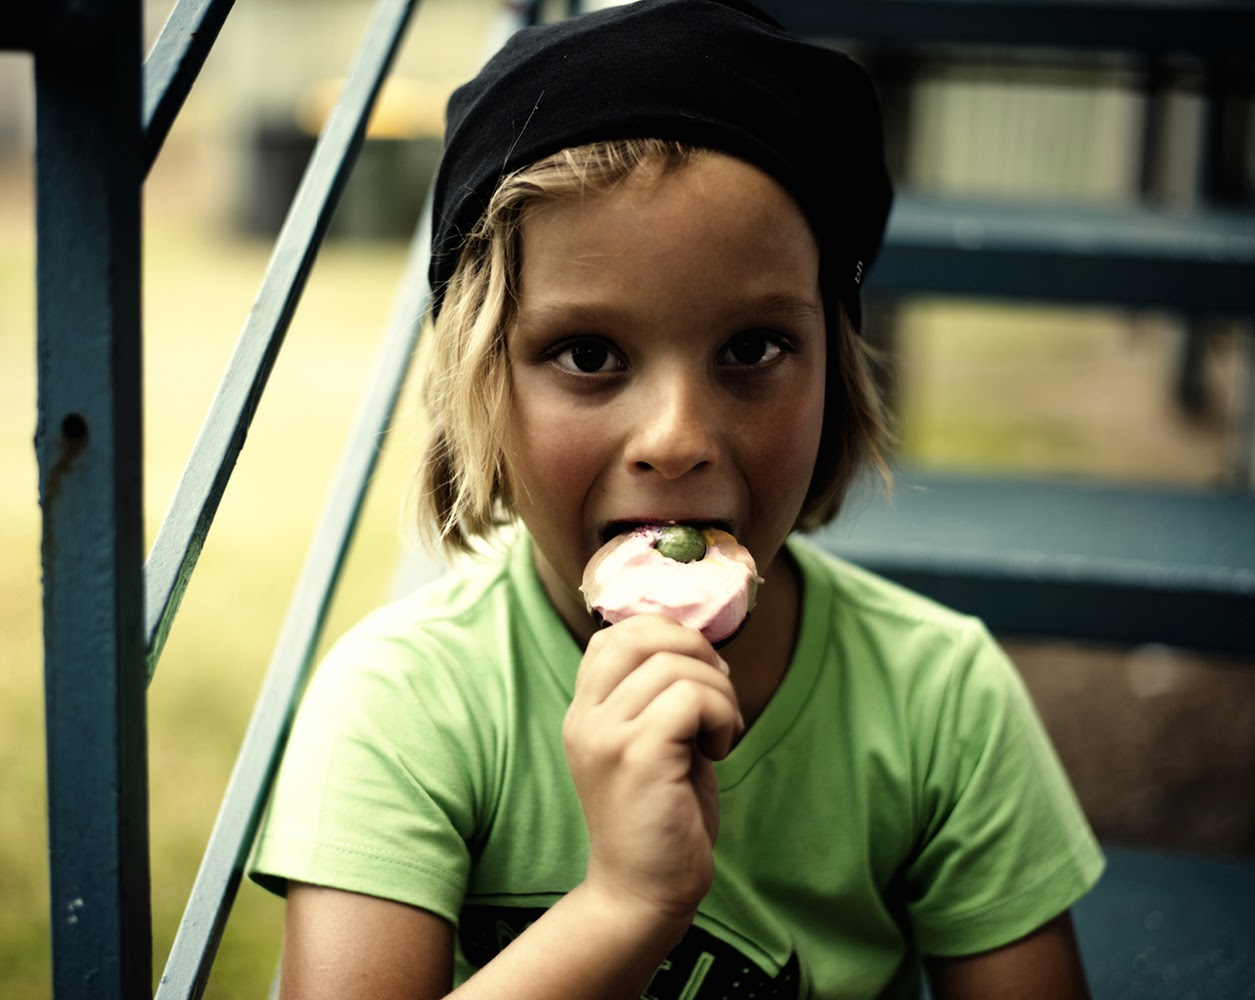 Bandit Kids SS15 preview - Australian kids clothes